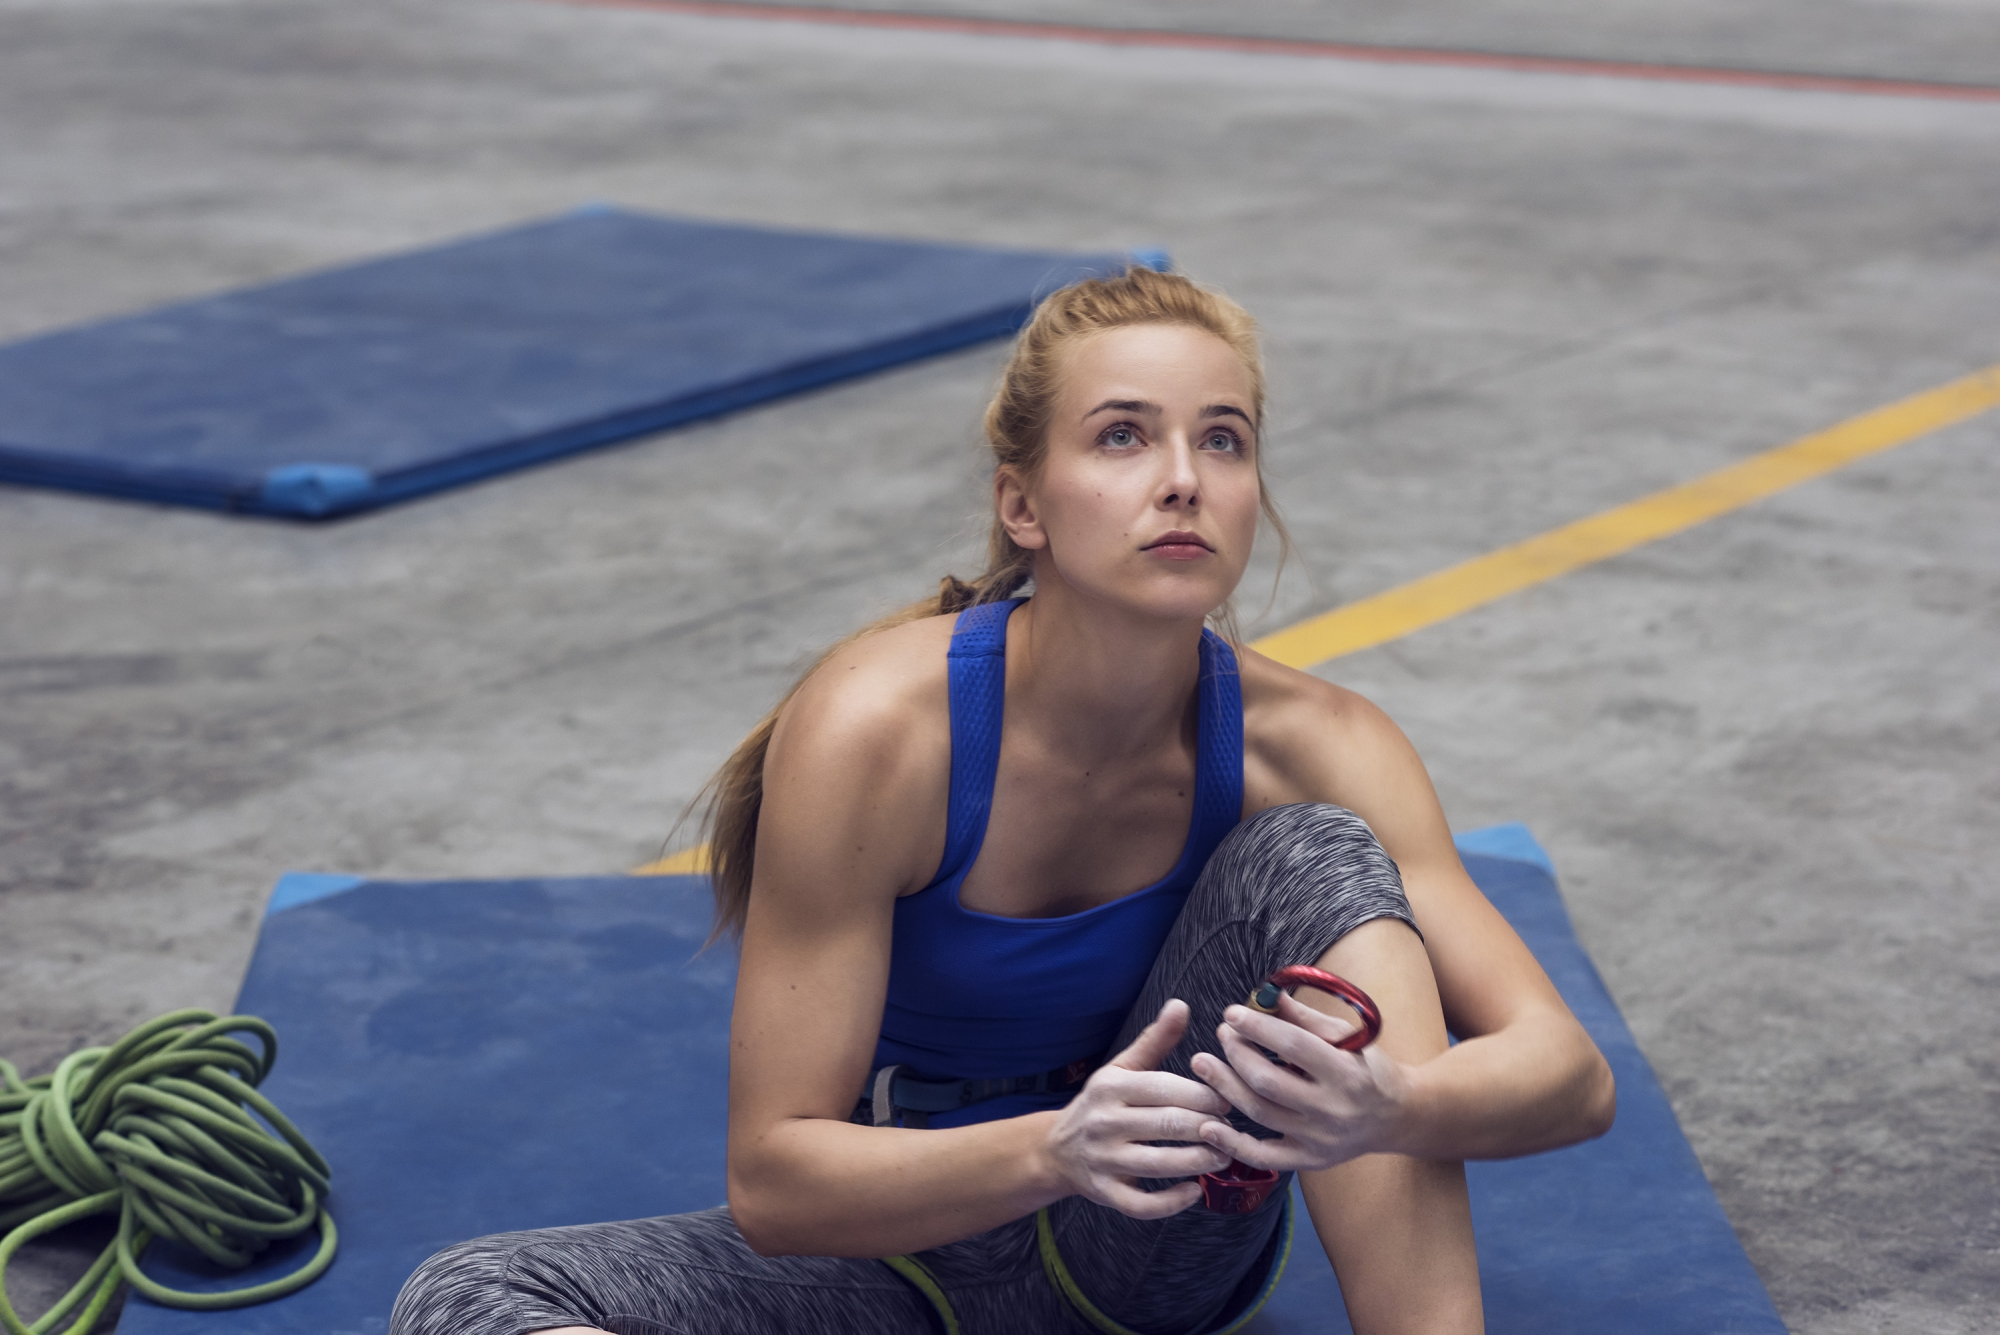 photo, photos, photography, photographer, photographers, woman, women, blonde, rope, mat, mats, ropes, muscle, muscles, fit, fitness, gym